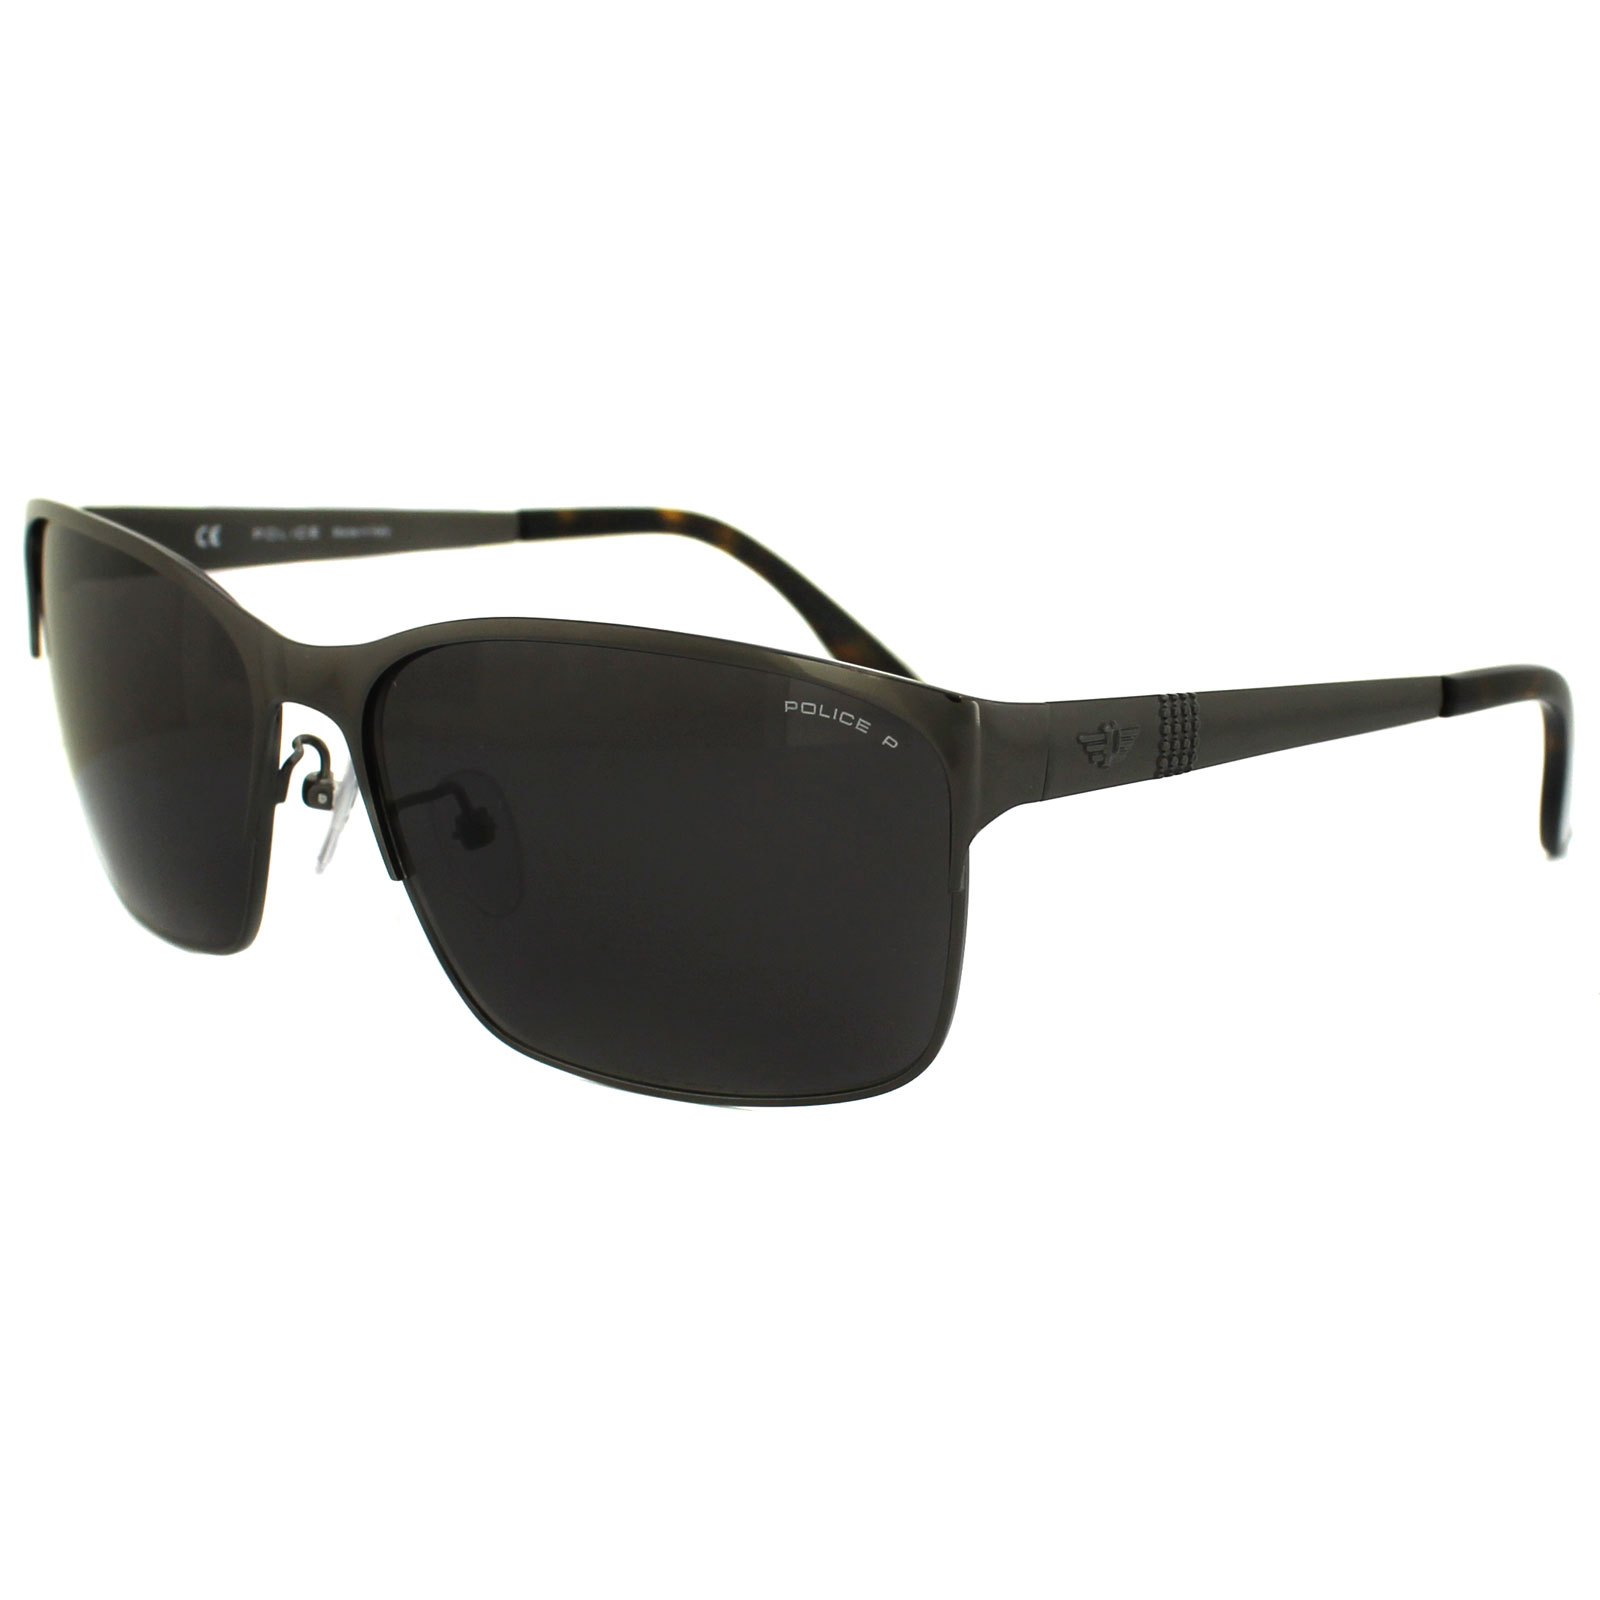 Cheap Police Sunglasses 8875g Discounted Sunglasses